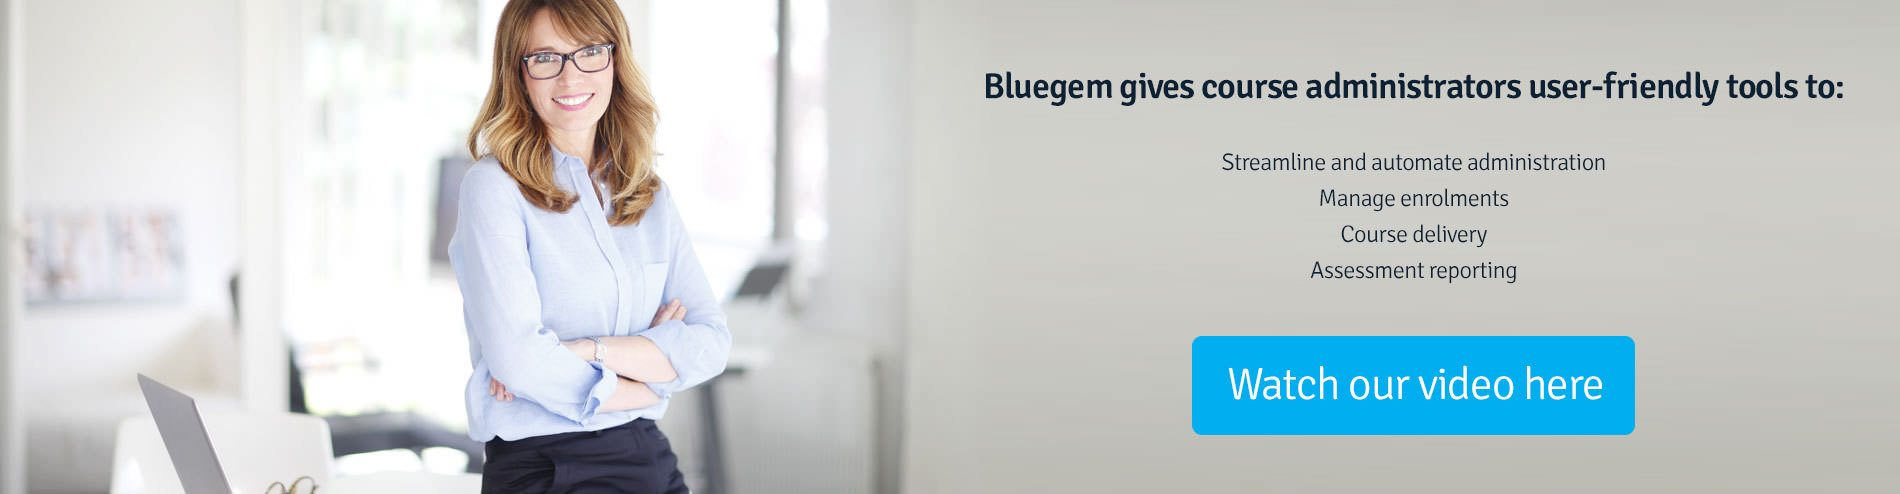 BLUEGEM-VIDEO-BANNER-1_V2